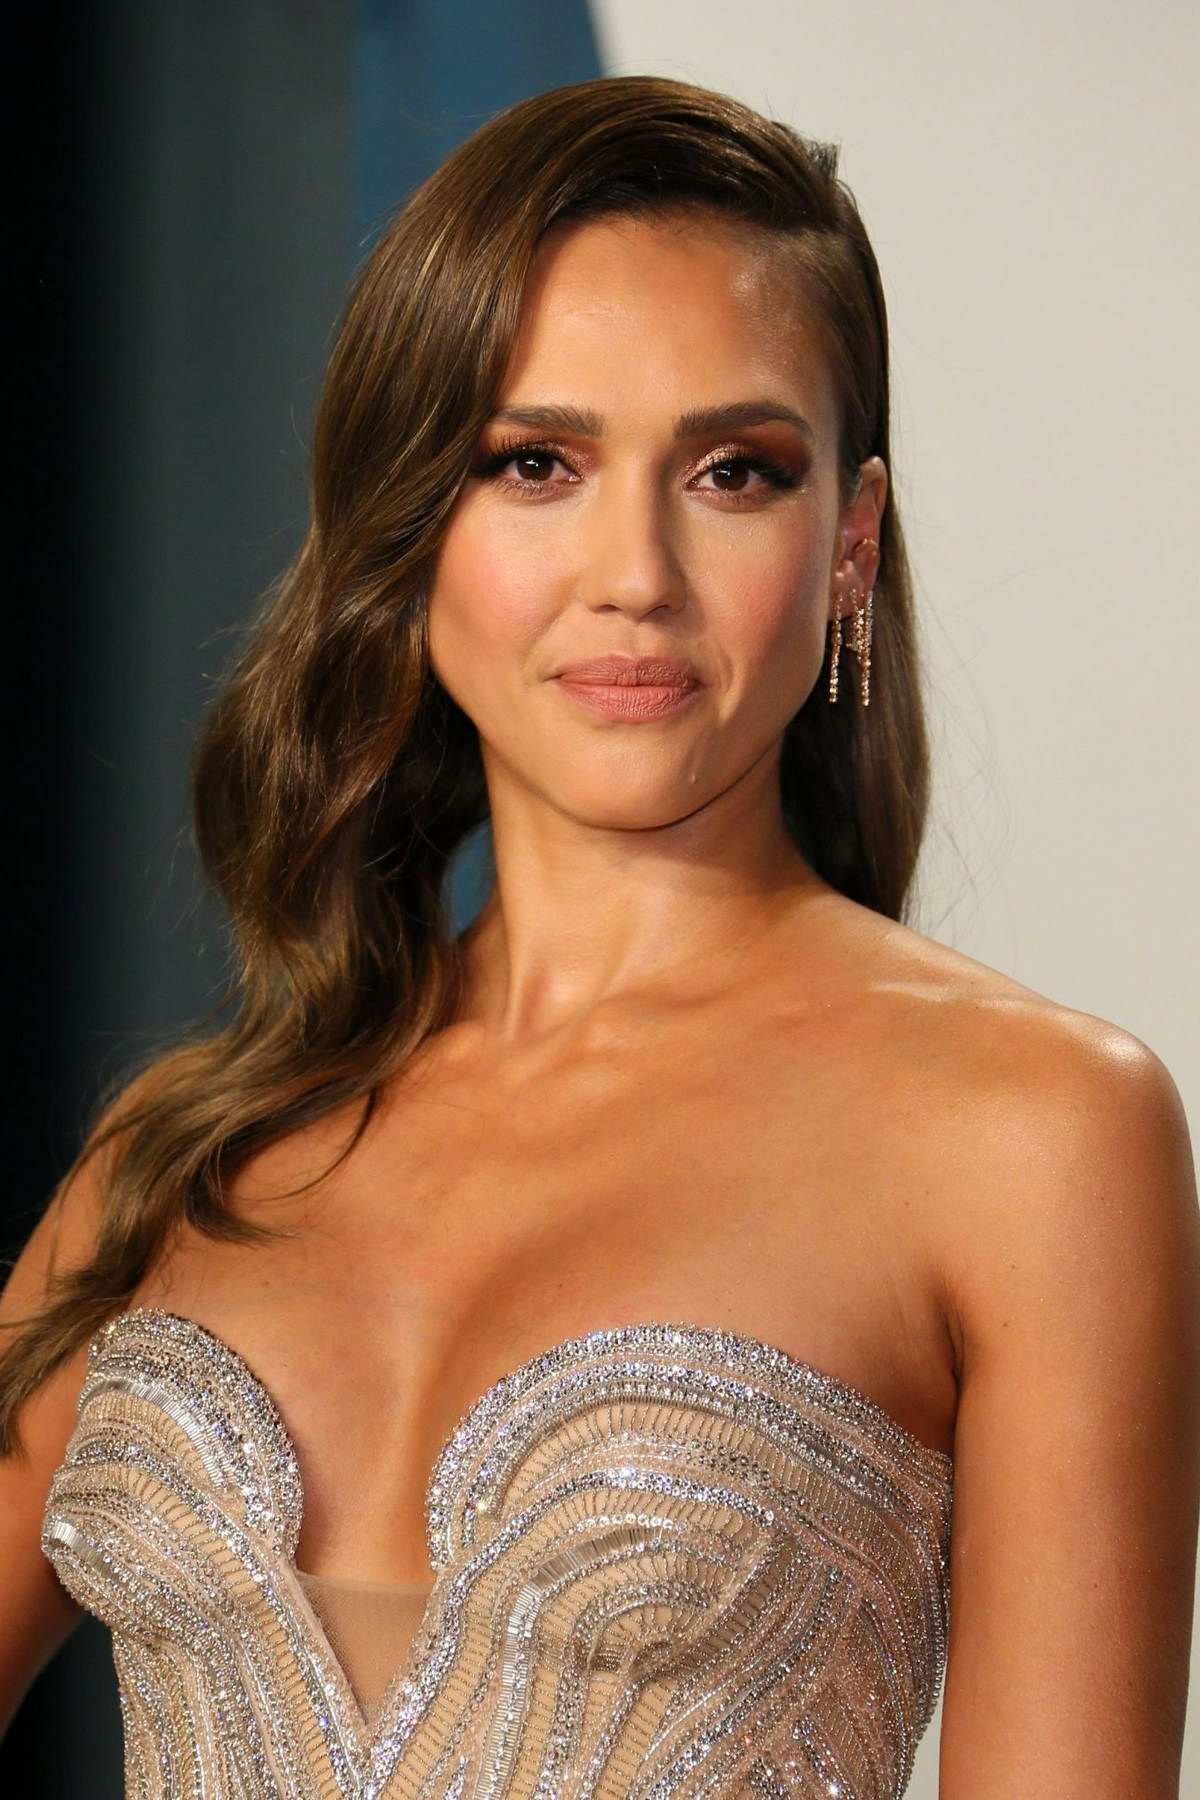 Jessica Alba Attends The 2020 Vanity Fair Oscar Party At Wallis Annenberg Center For The Performing Arts In Los Angeles 090220 6